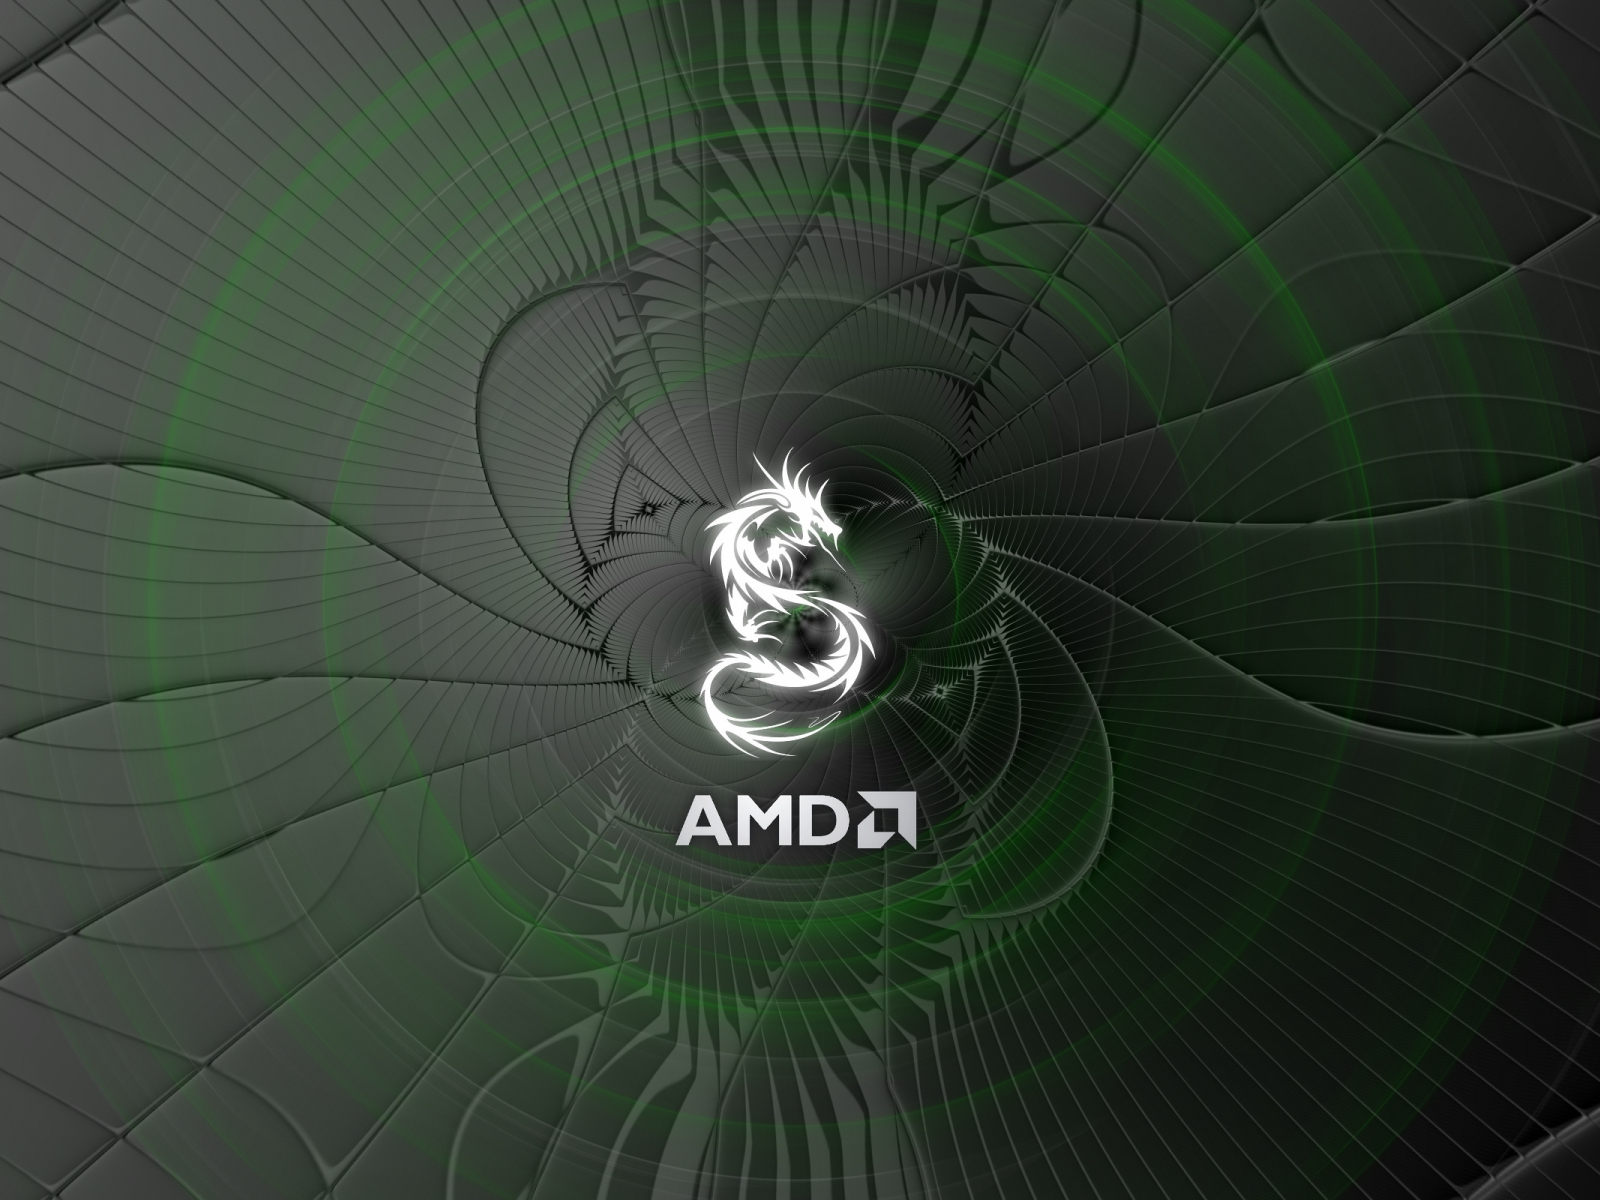 AMD Dragon Wallpapers By Me